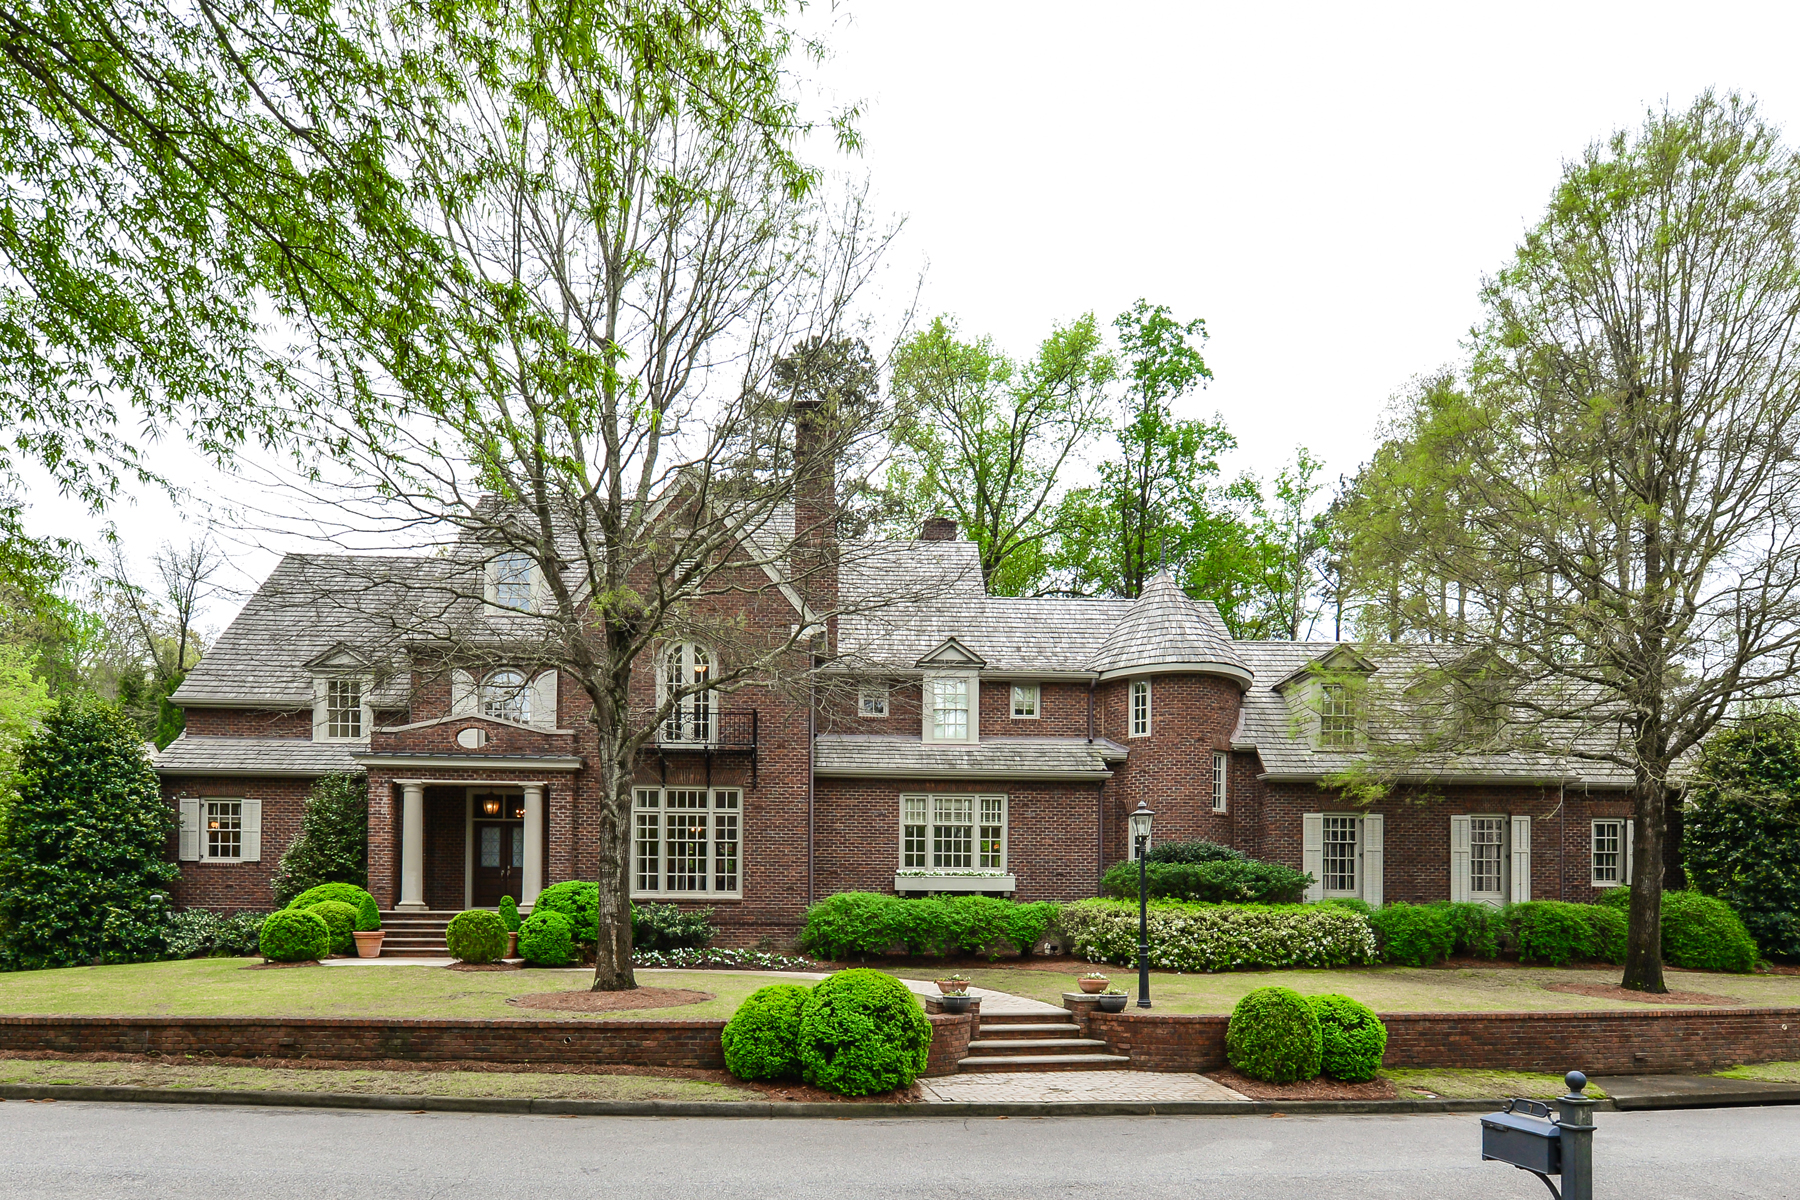 Maison unifamiliale pour l Vente à Classic home in a gated cul-de-sac street 18 Leighton Court Atlanta, Georgia, 30327 États-Unis